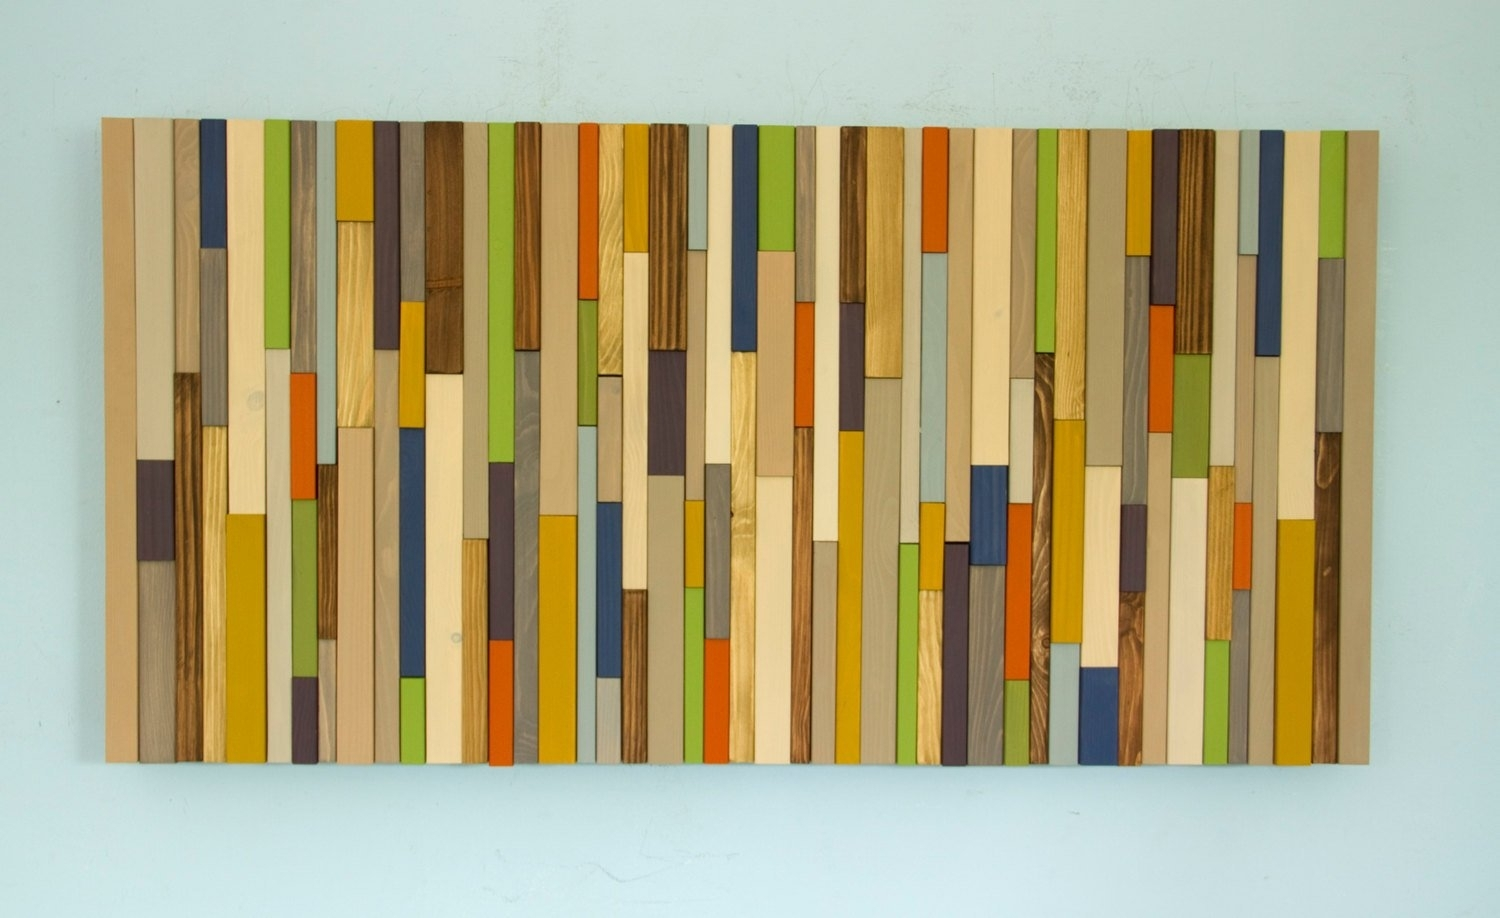 Wood Wall Art, Modern Wood Art, Reclaimed 3D Wood Sculpture, Mid Pertaining To 2018 Mid Century Wall Art (View 20 of 20)